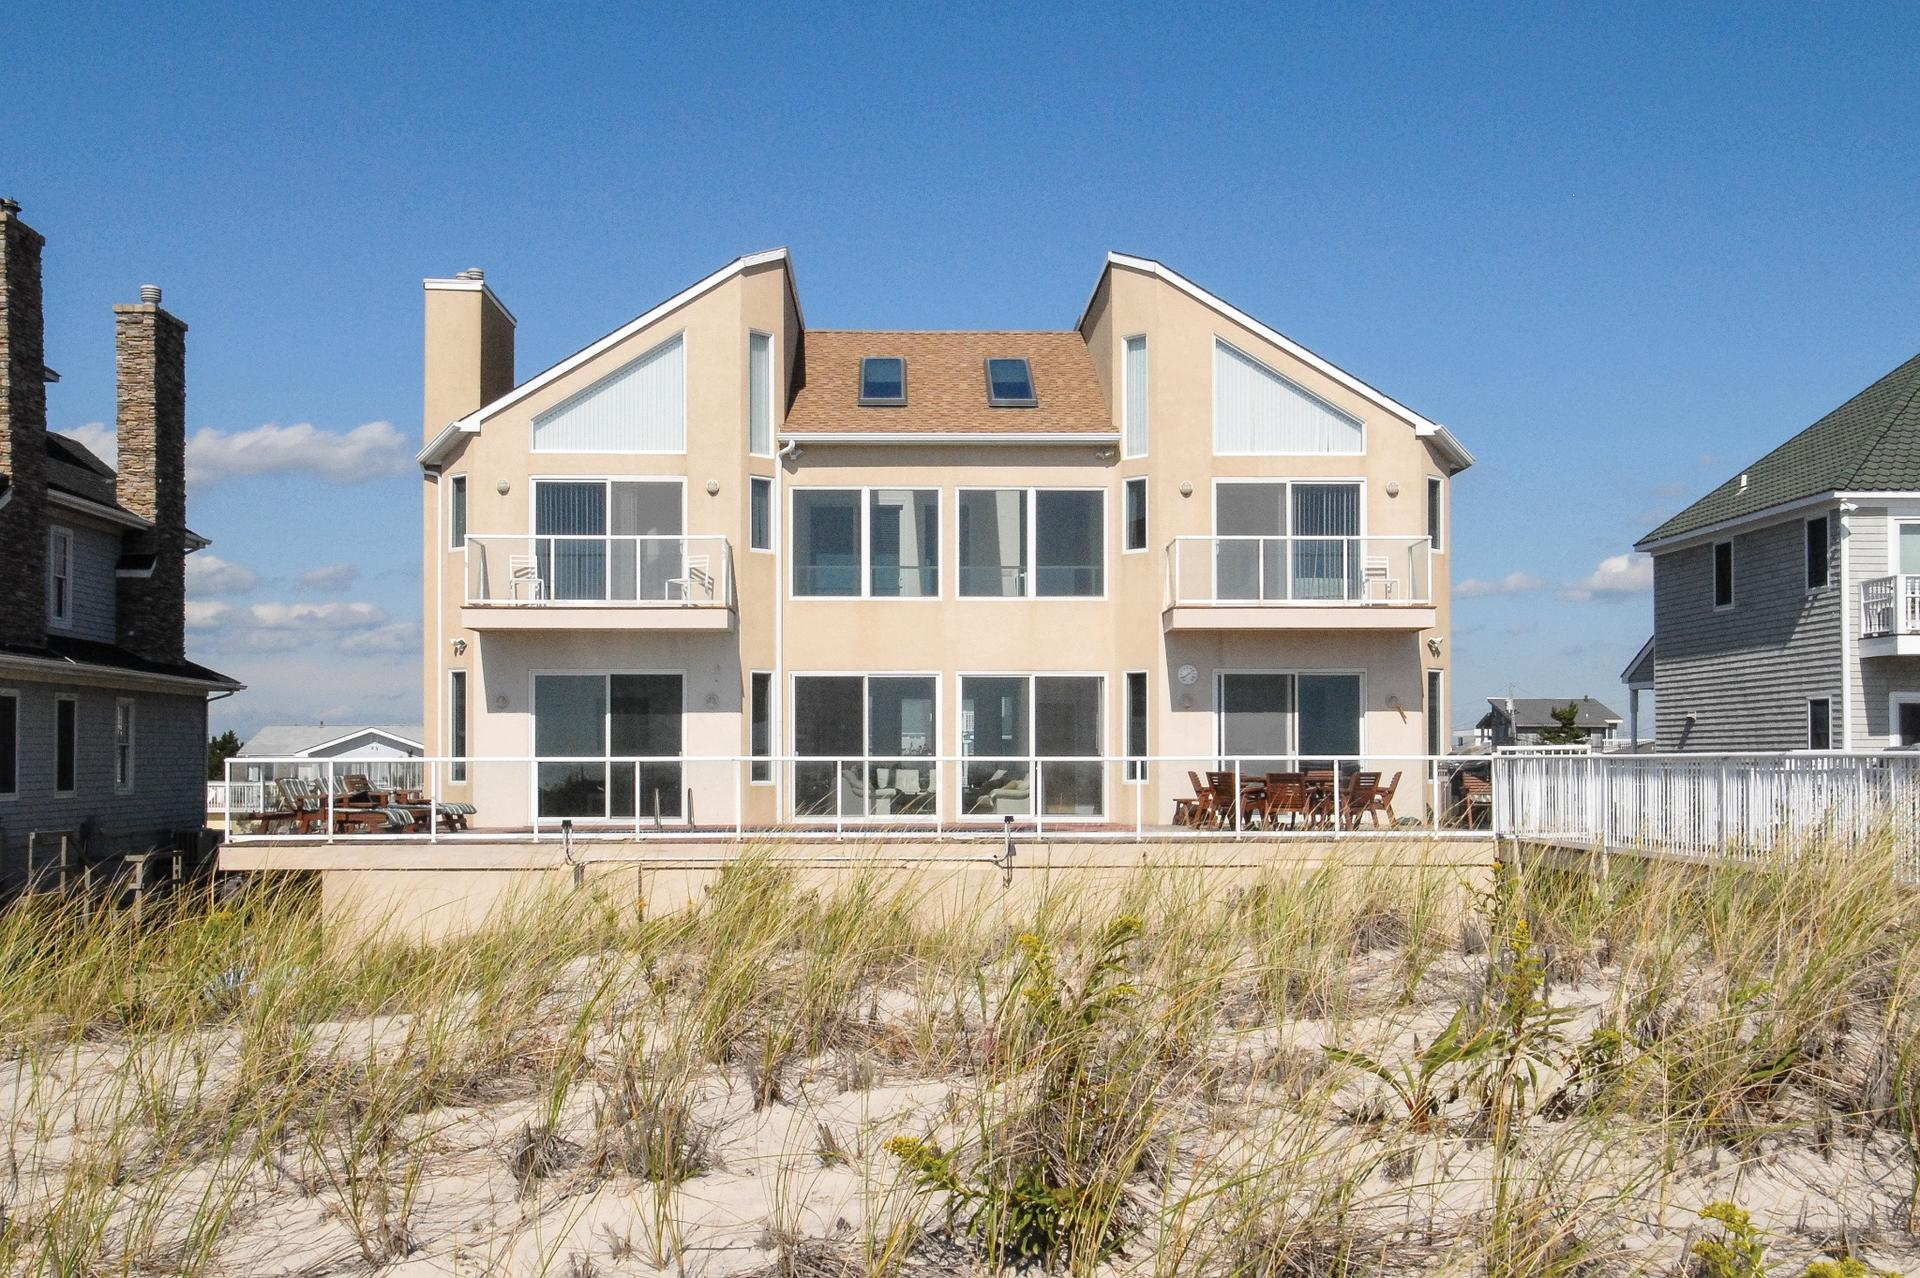 Single Family Home for Sale at Westhampton Oceanfront Westhampton Beach, New York